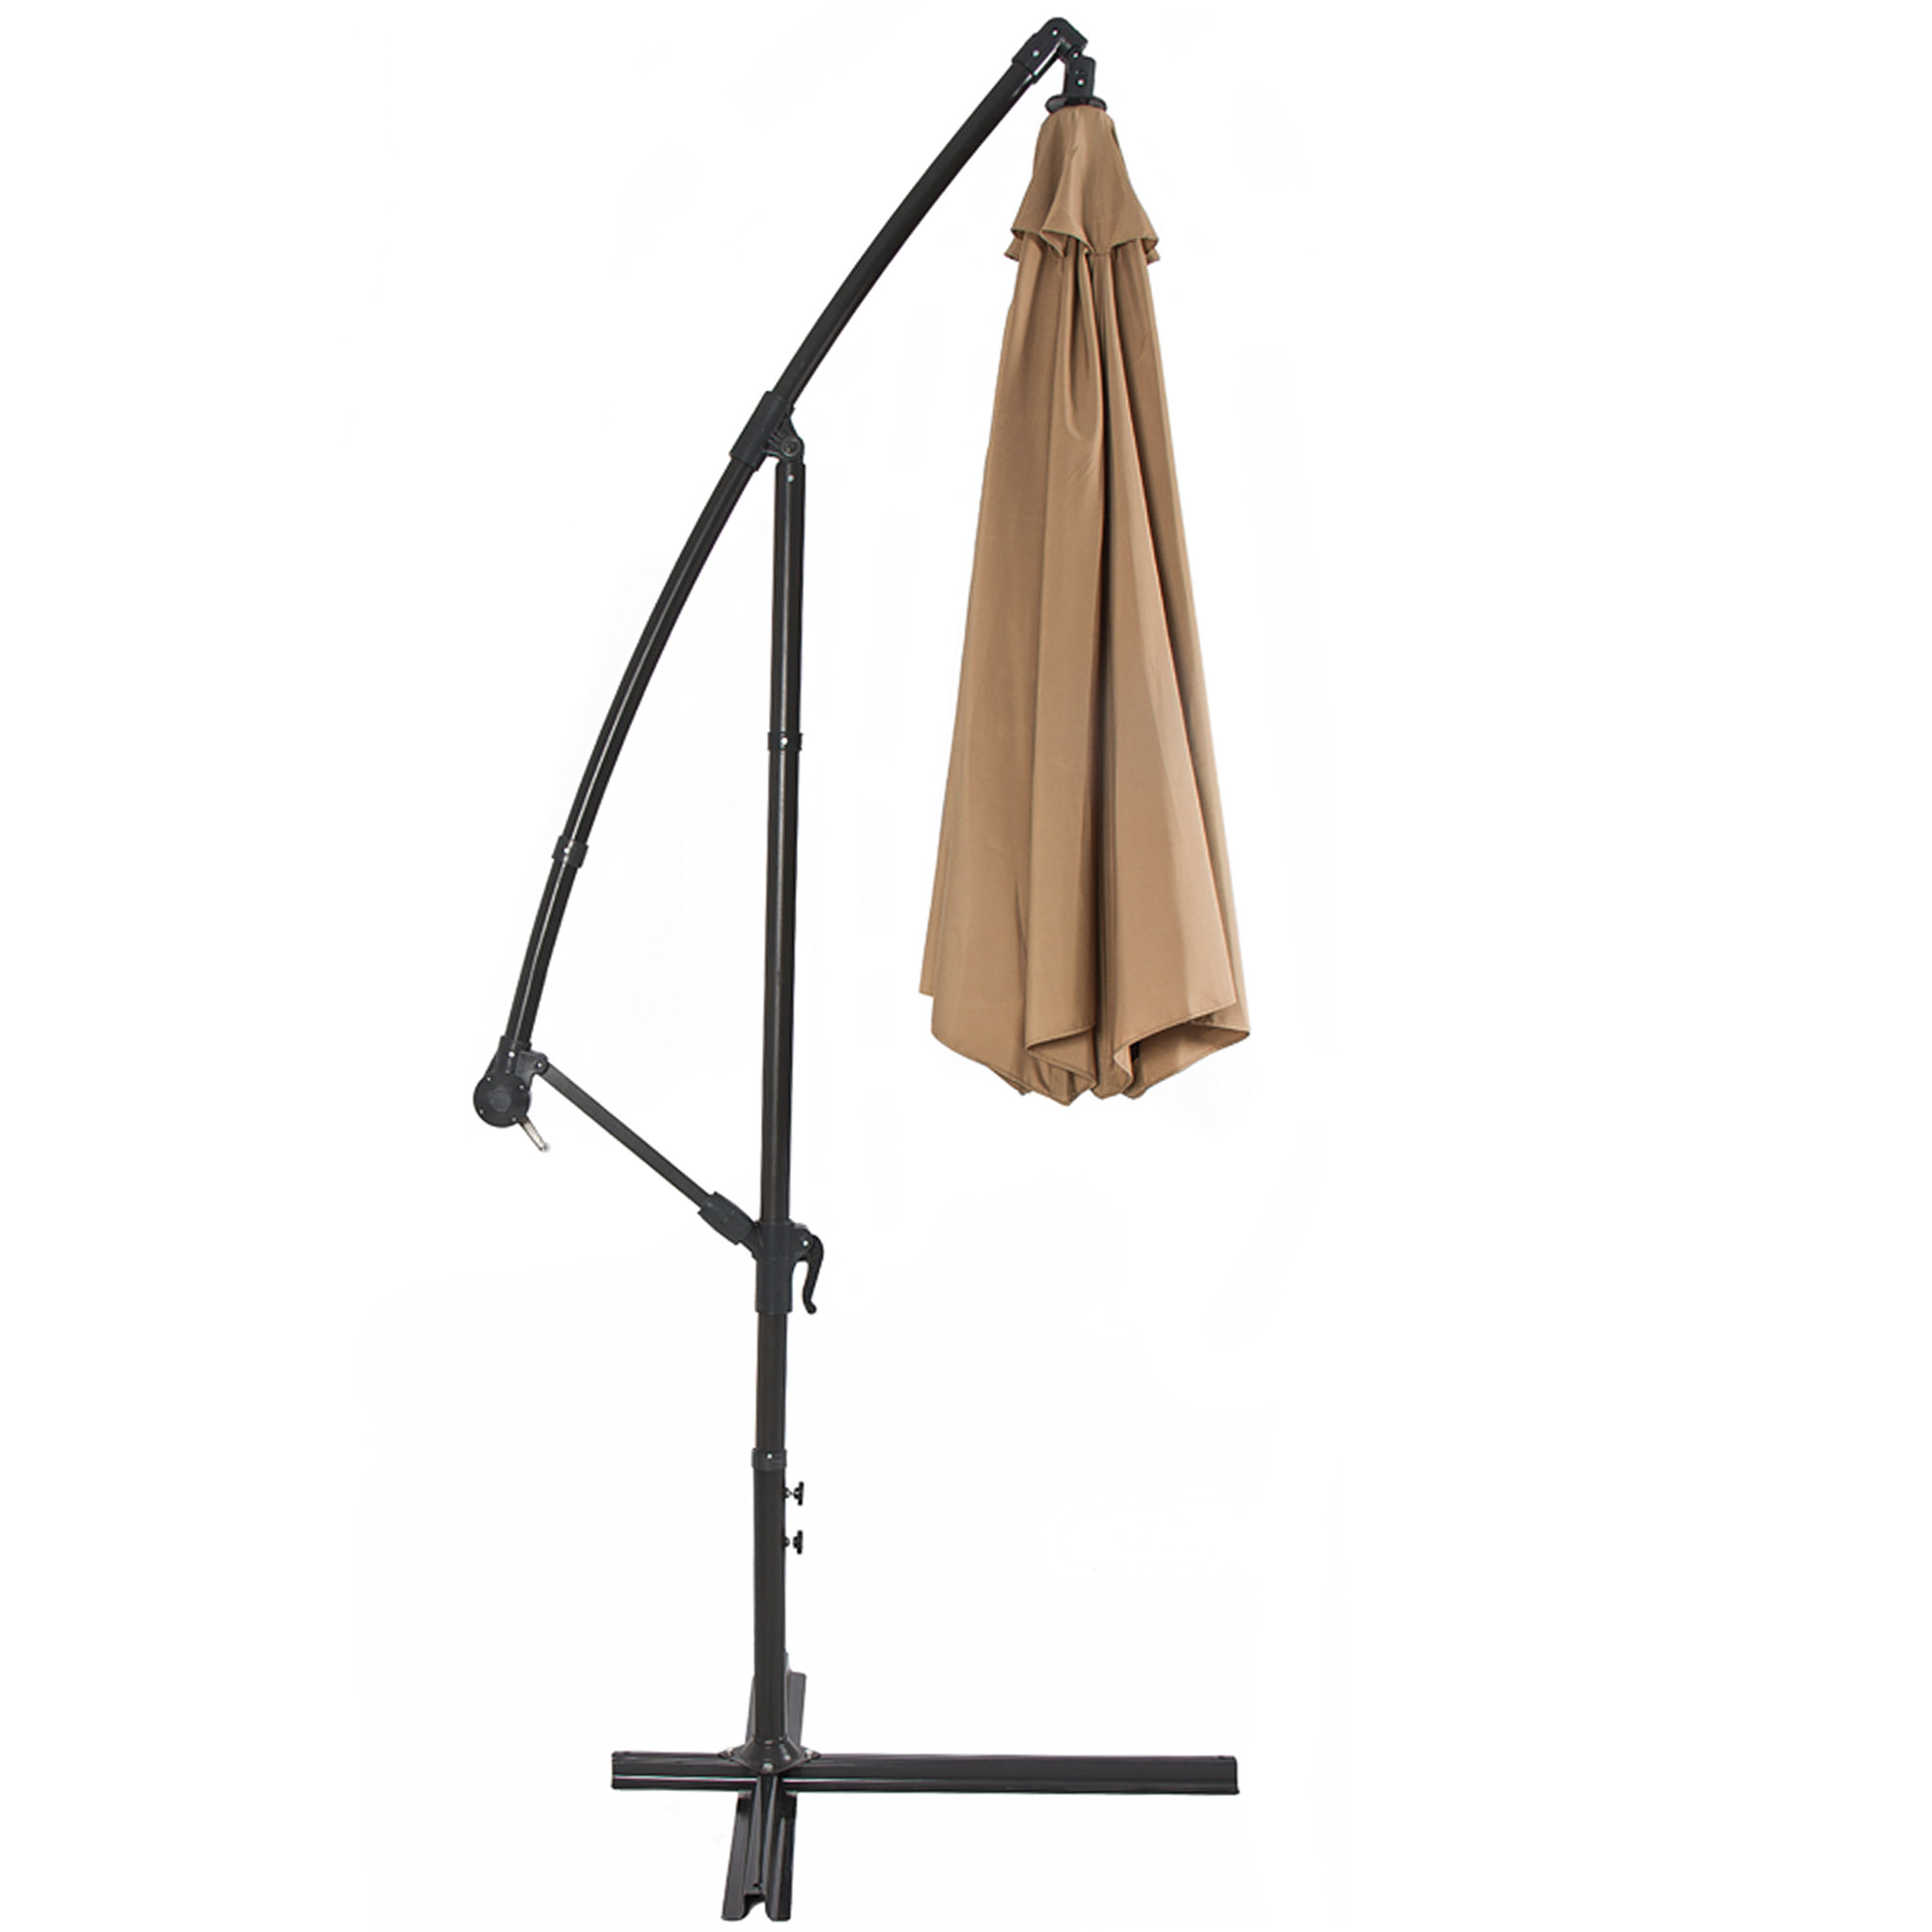 BCP-10ft-Offset-Hanging-Market-Patio-Umbrella-w-Tilt-Adjustment-Hand-Crank thumbnail 9